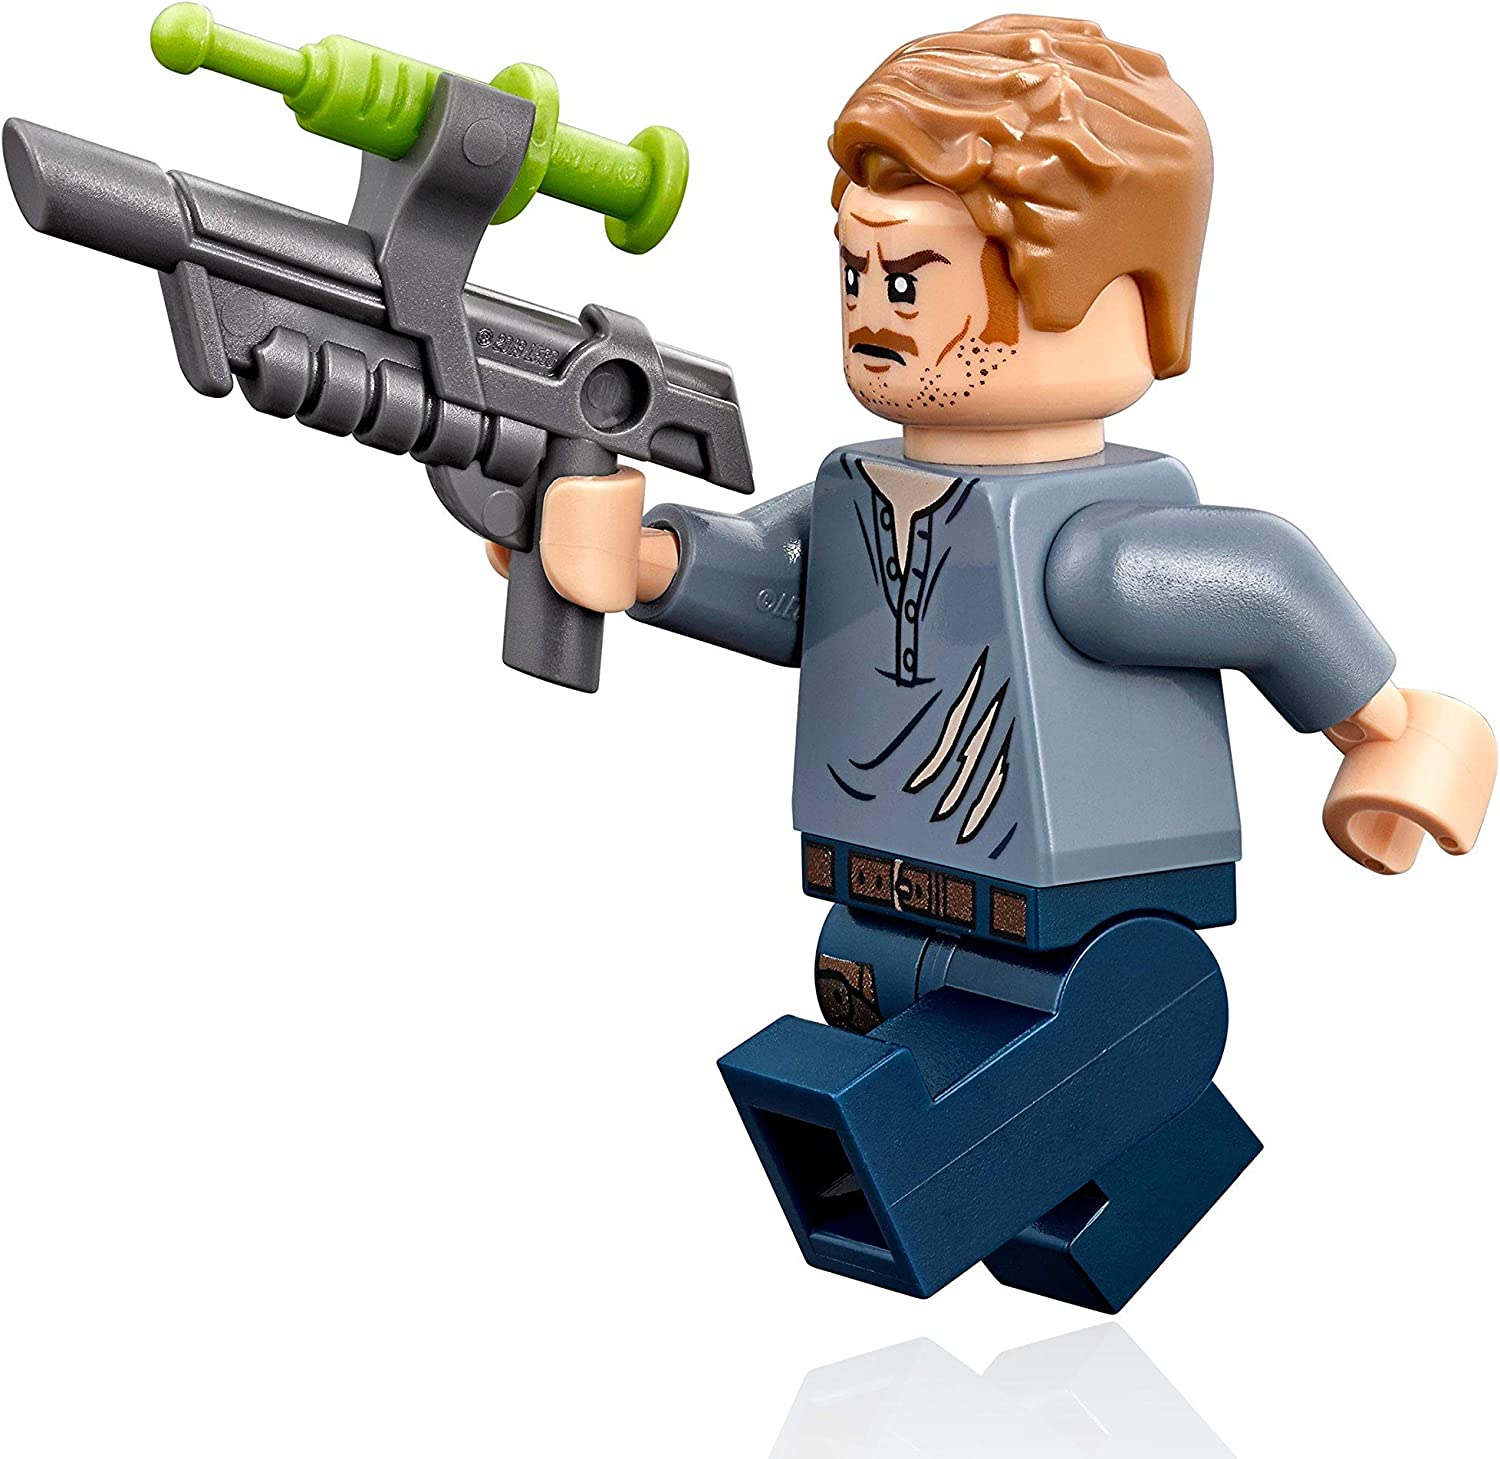 LEGO Jurassic World Owen Grady Minifigure 75929 Fallen Kingdom Mini Fig